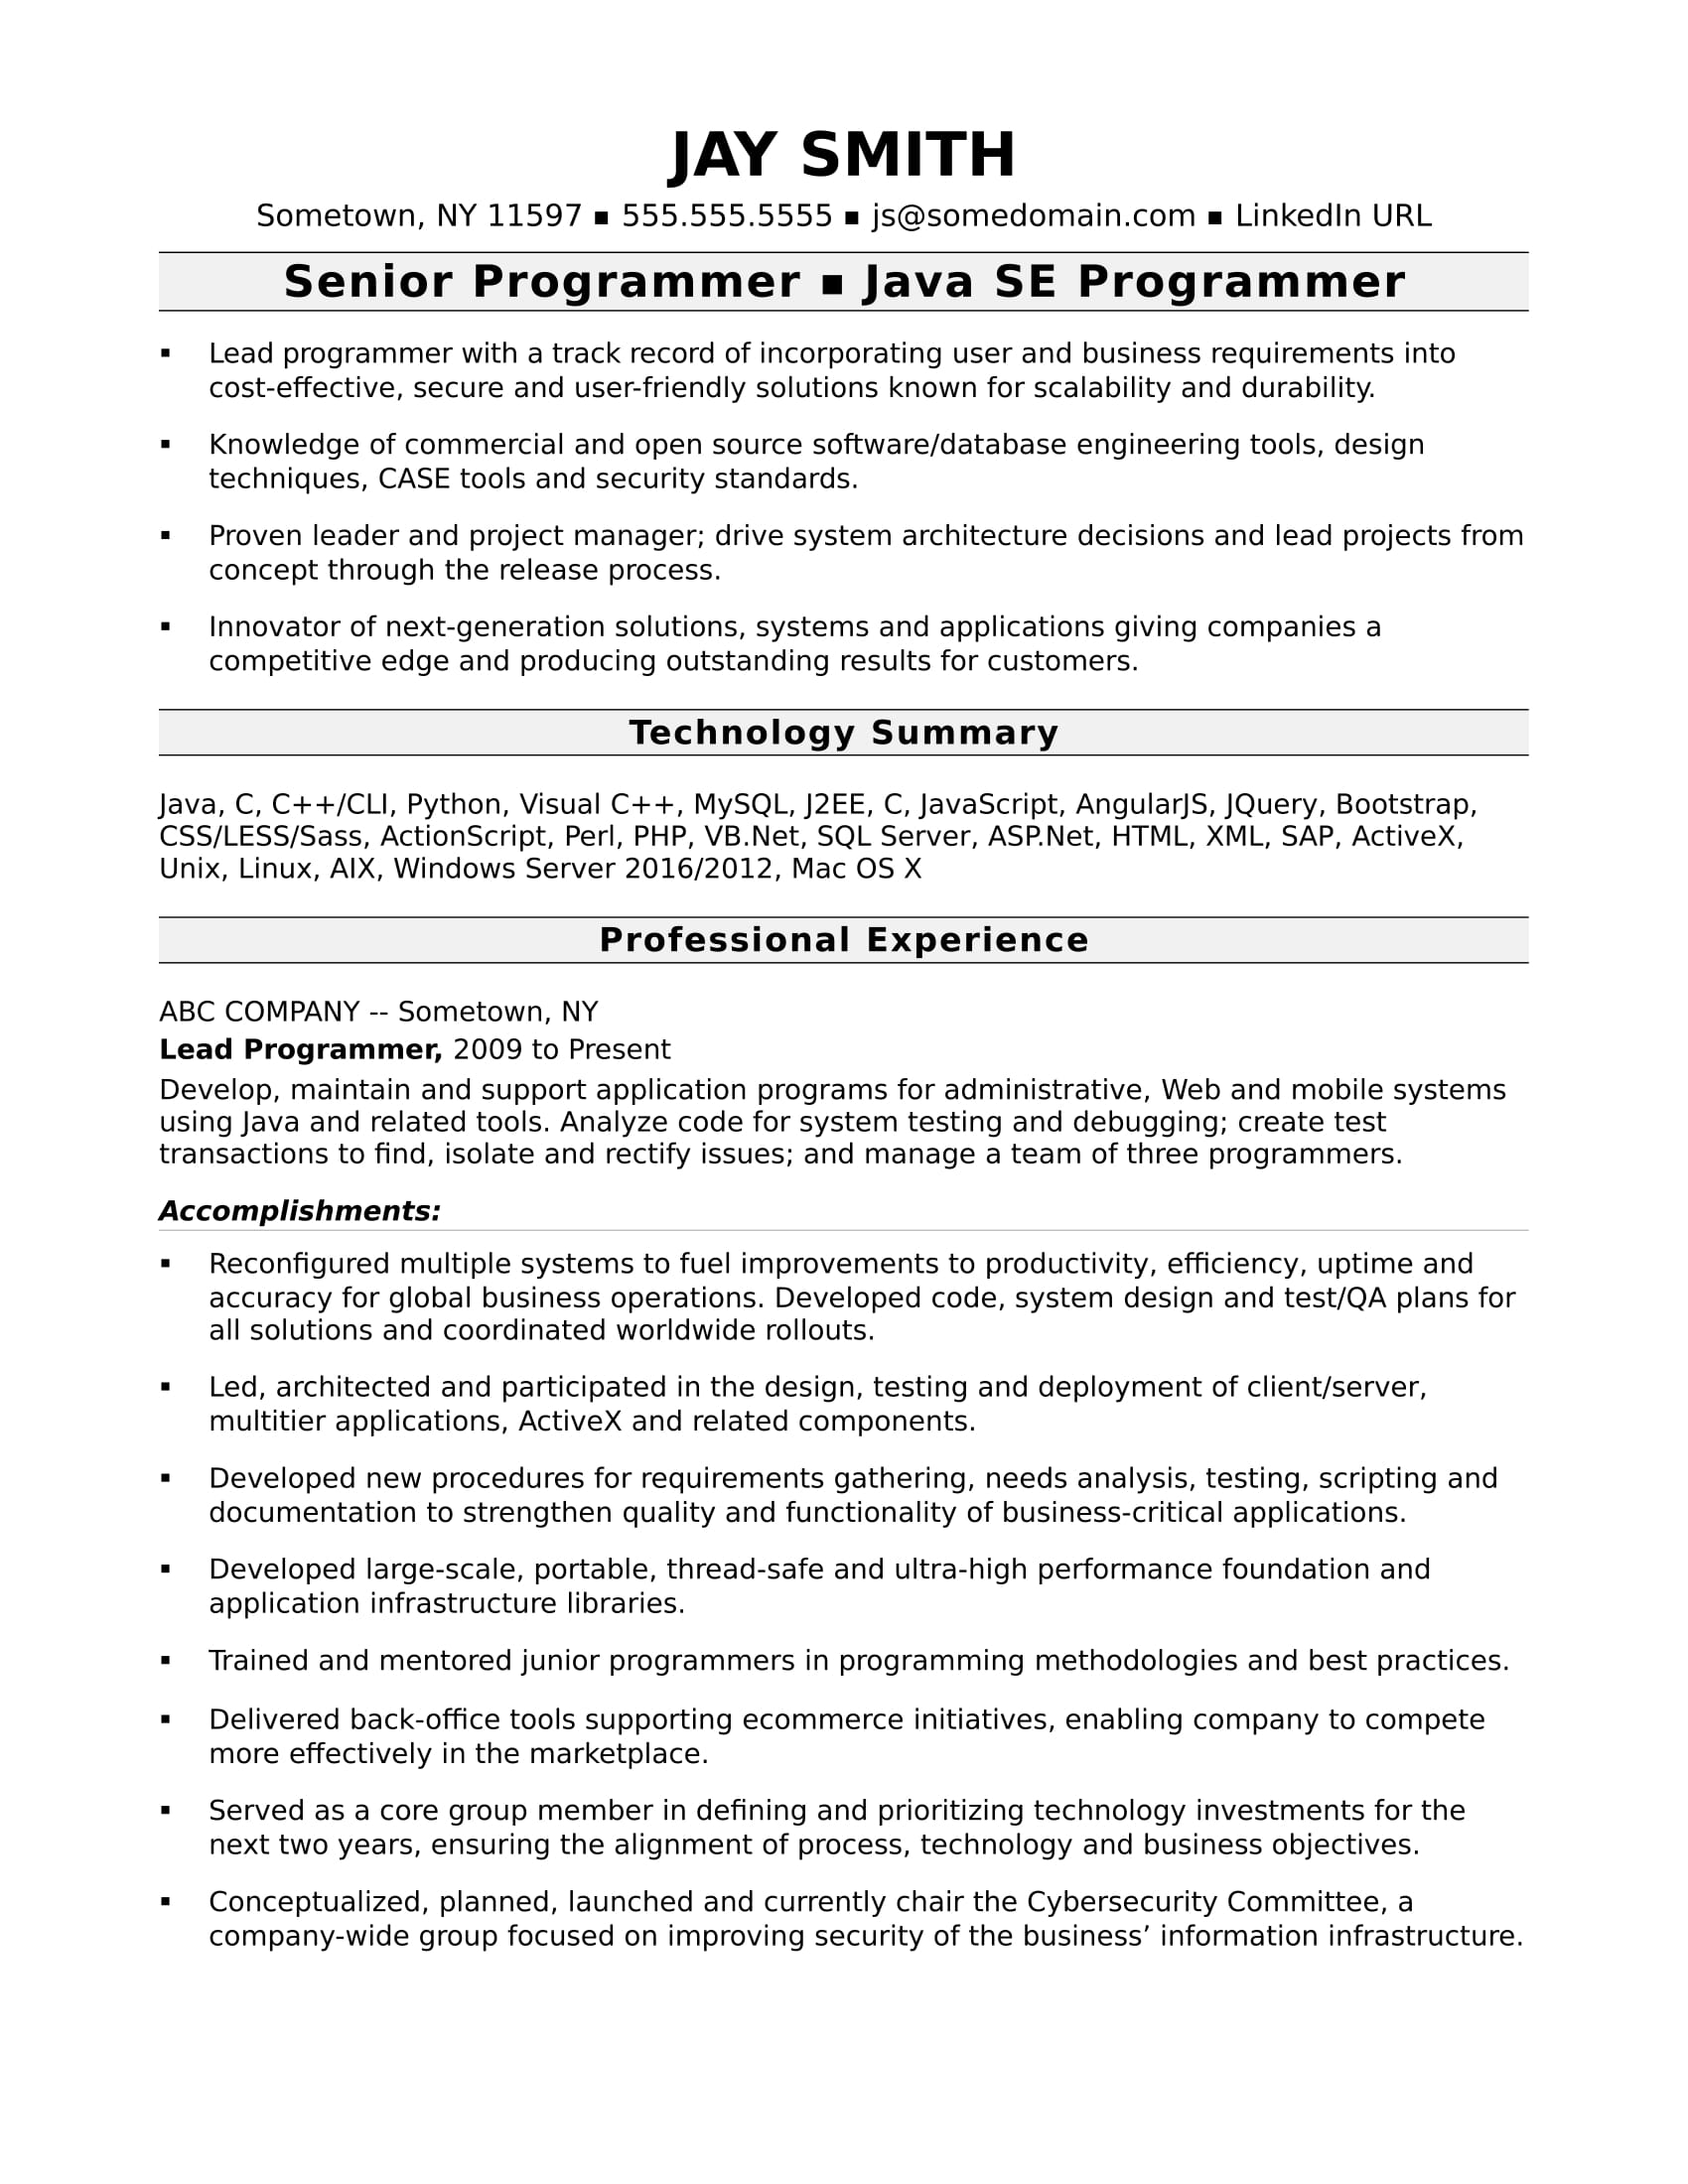 programmer resume template monster professional experience sample computer experienced Resume Professional Experience Resume Sample